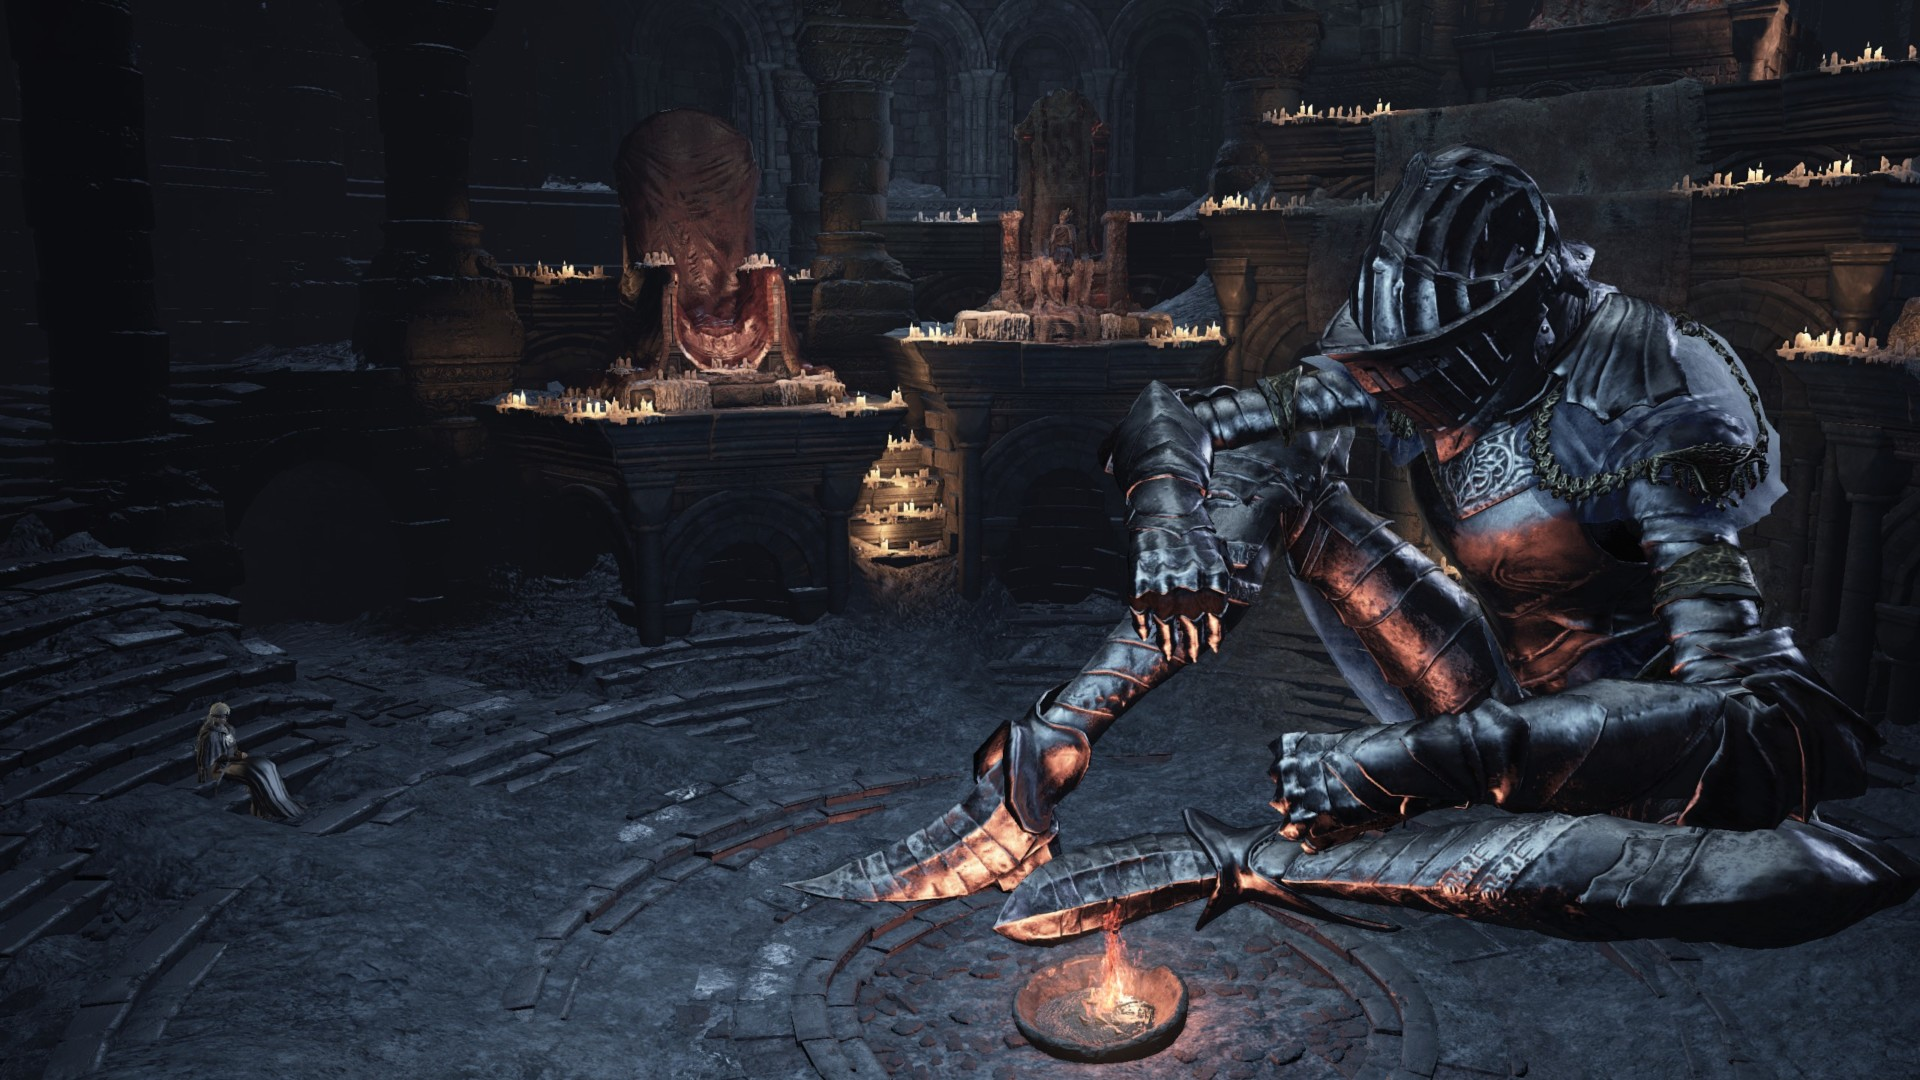 Test yourself with this comprehensive Dark Souls 3 Challenge Mod